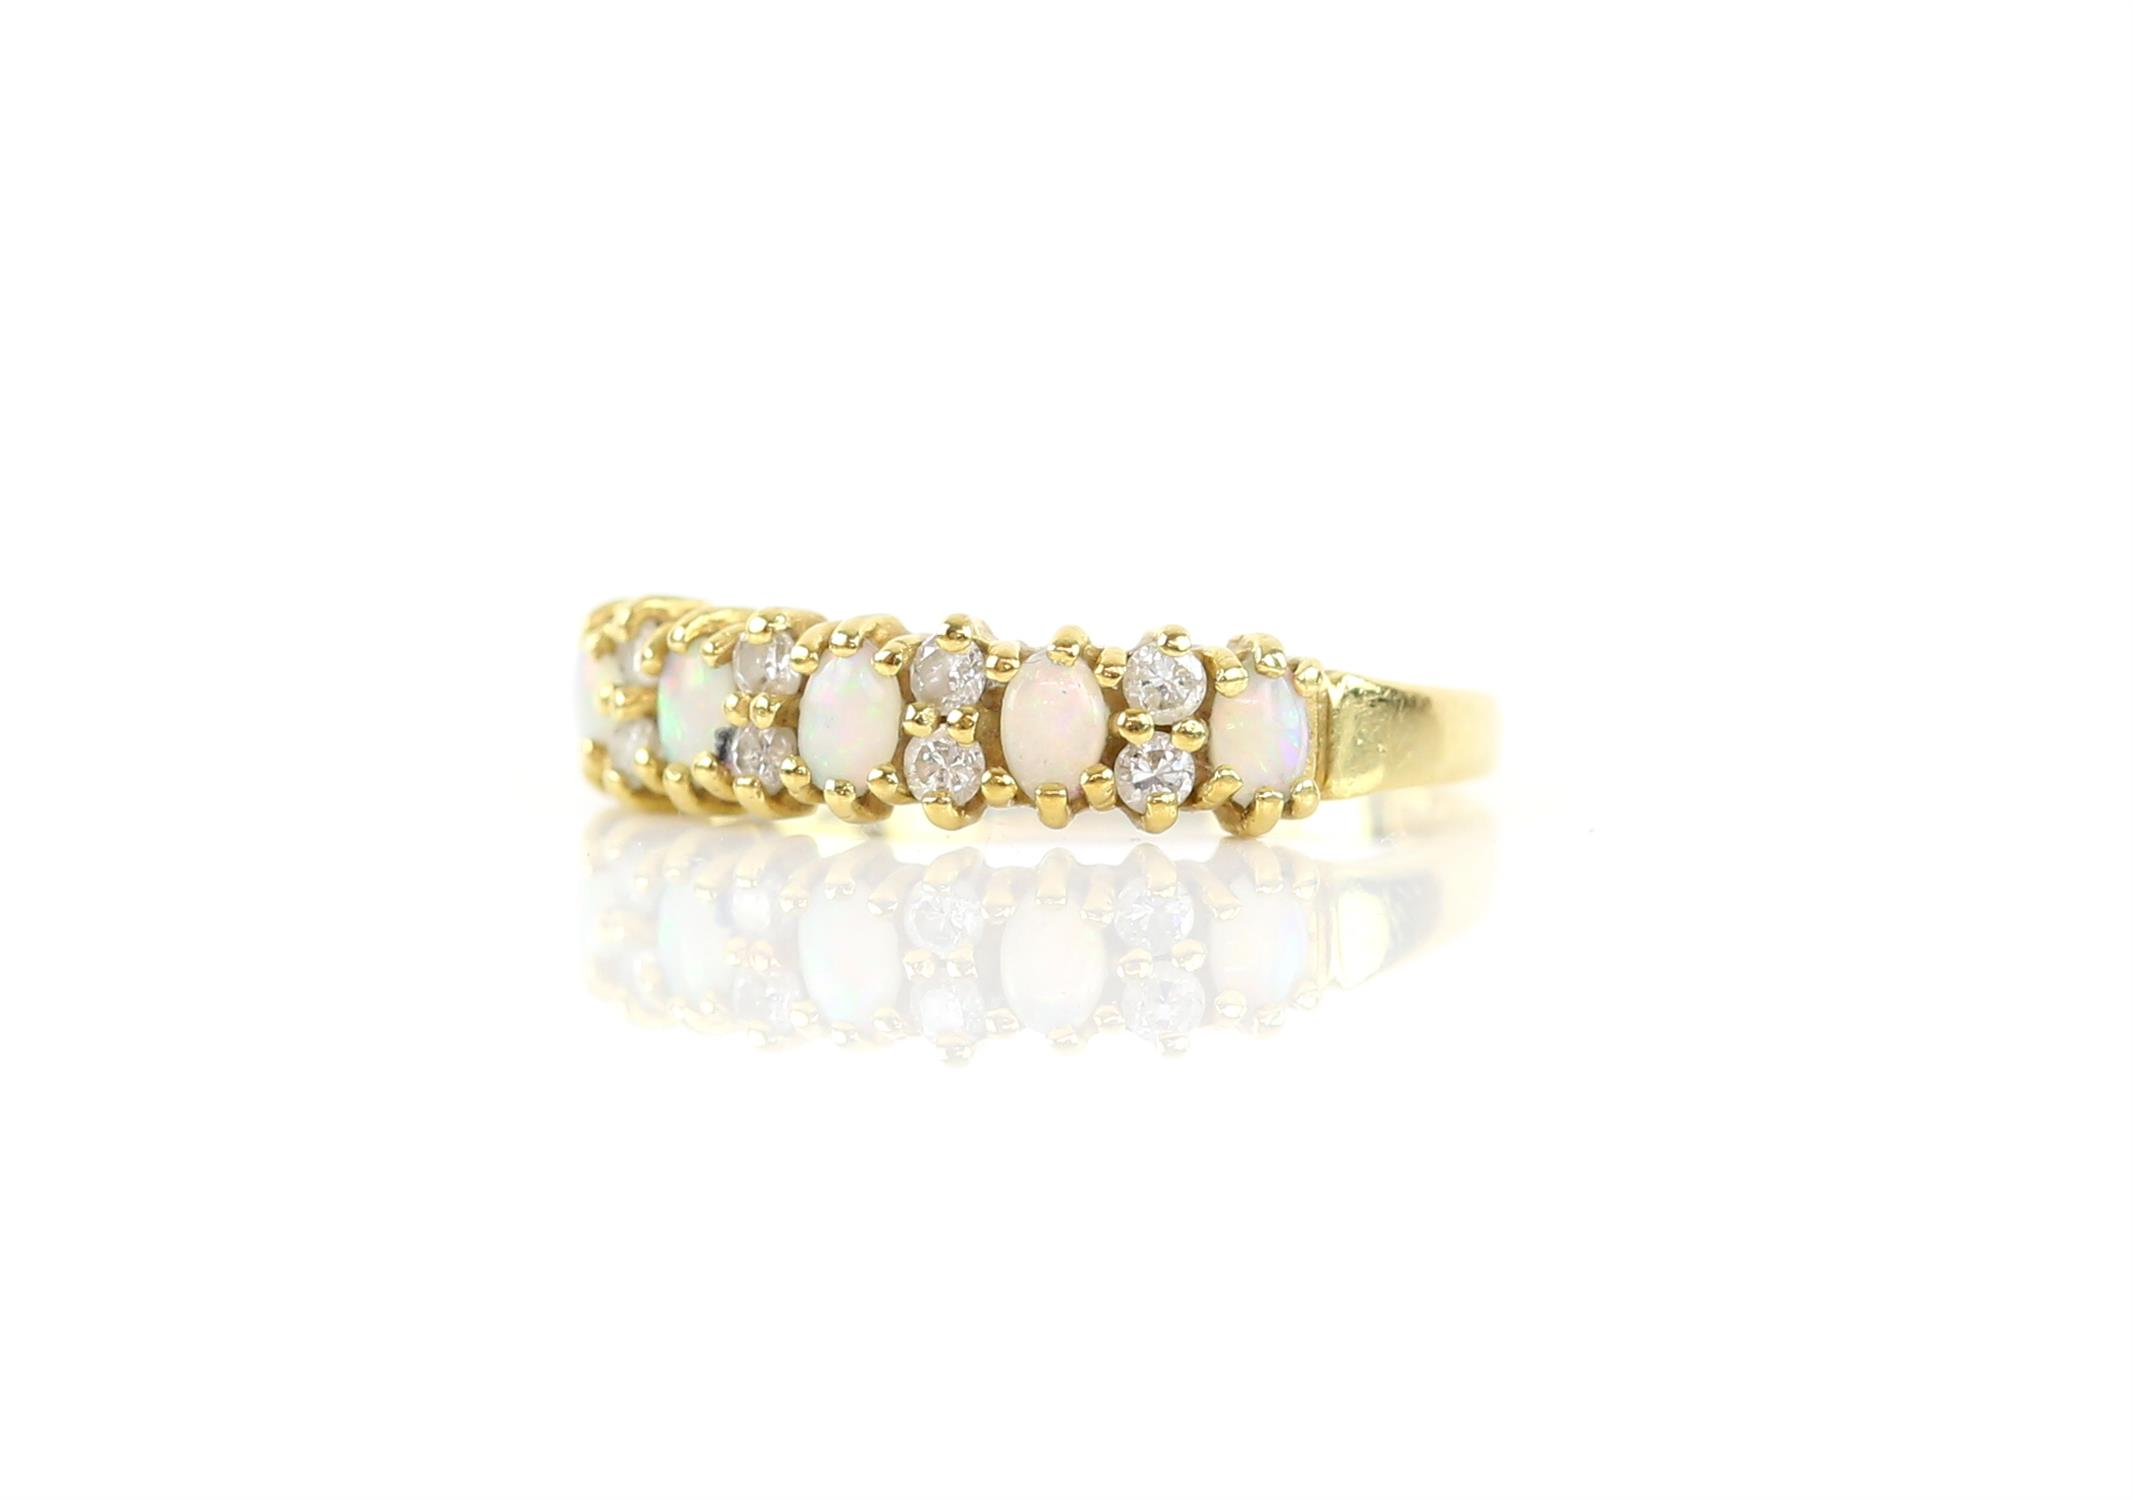 Opal and diamond half hoop ring, set with five oval cabochon cut opals, spaced with round brilliant - Image 2 of 3